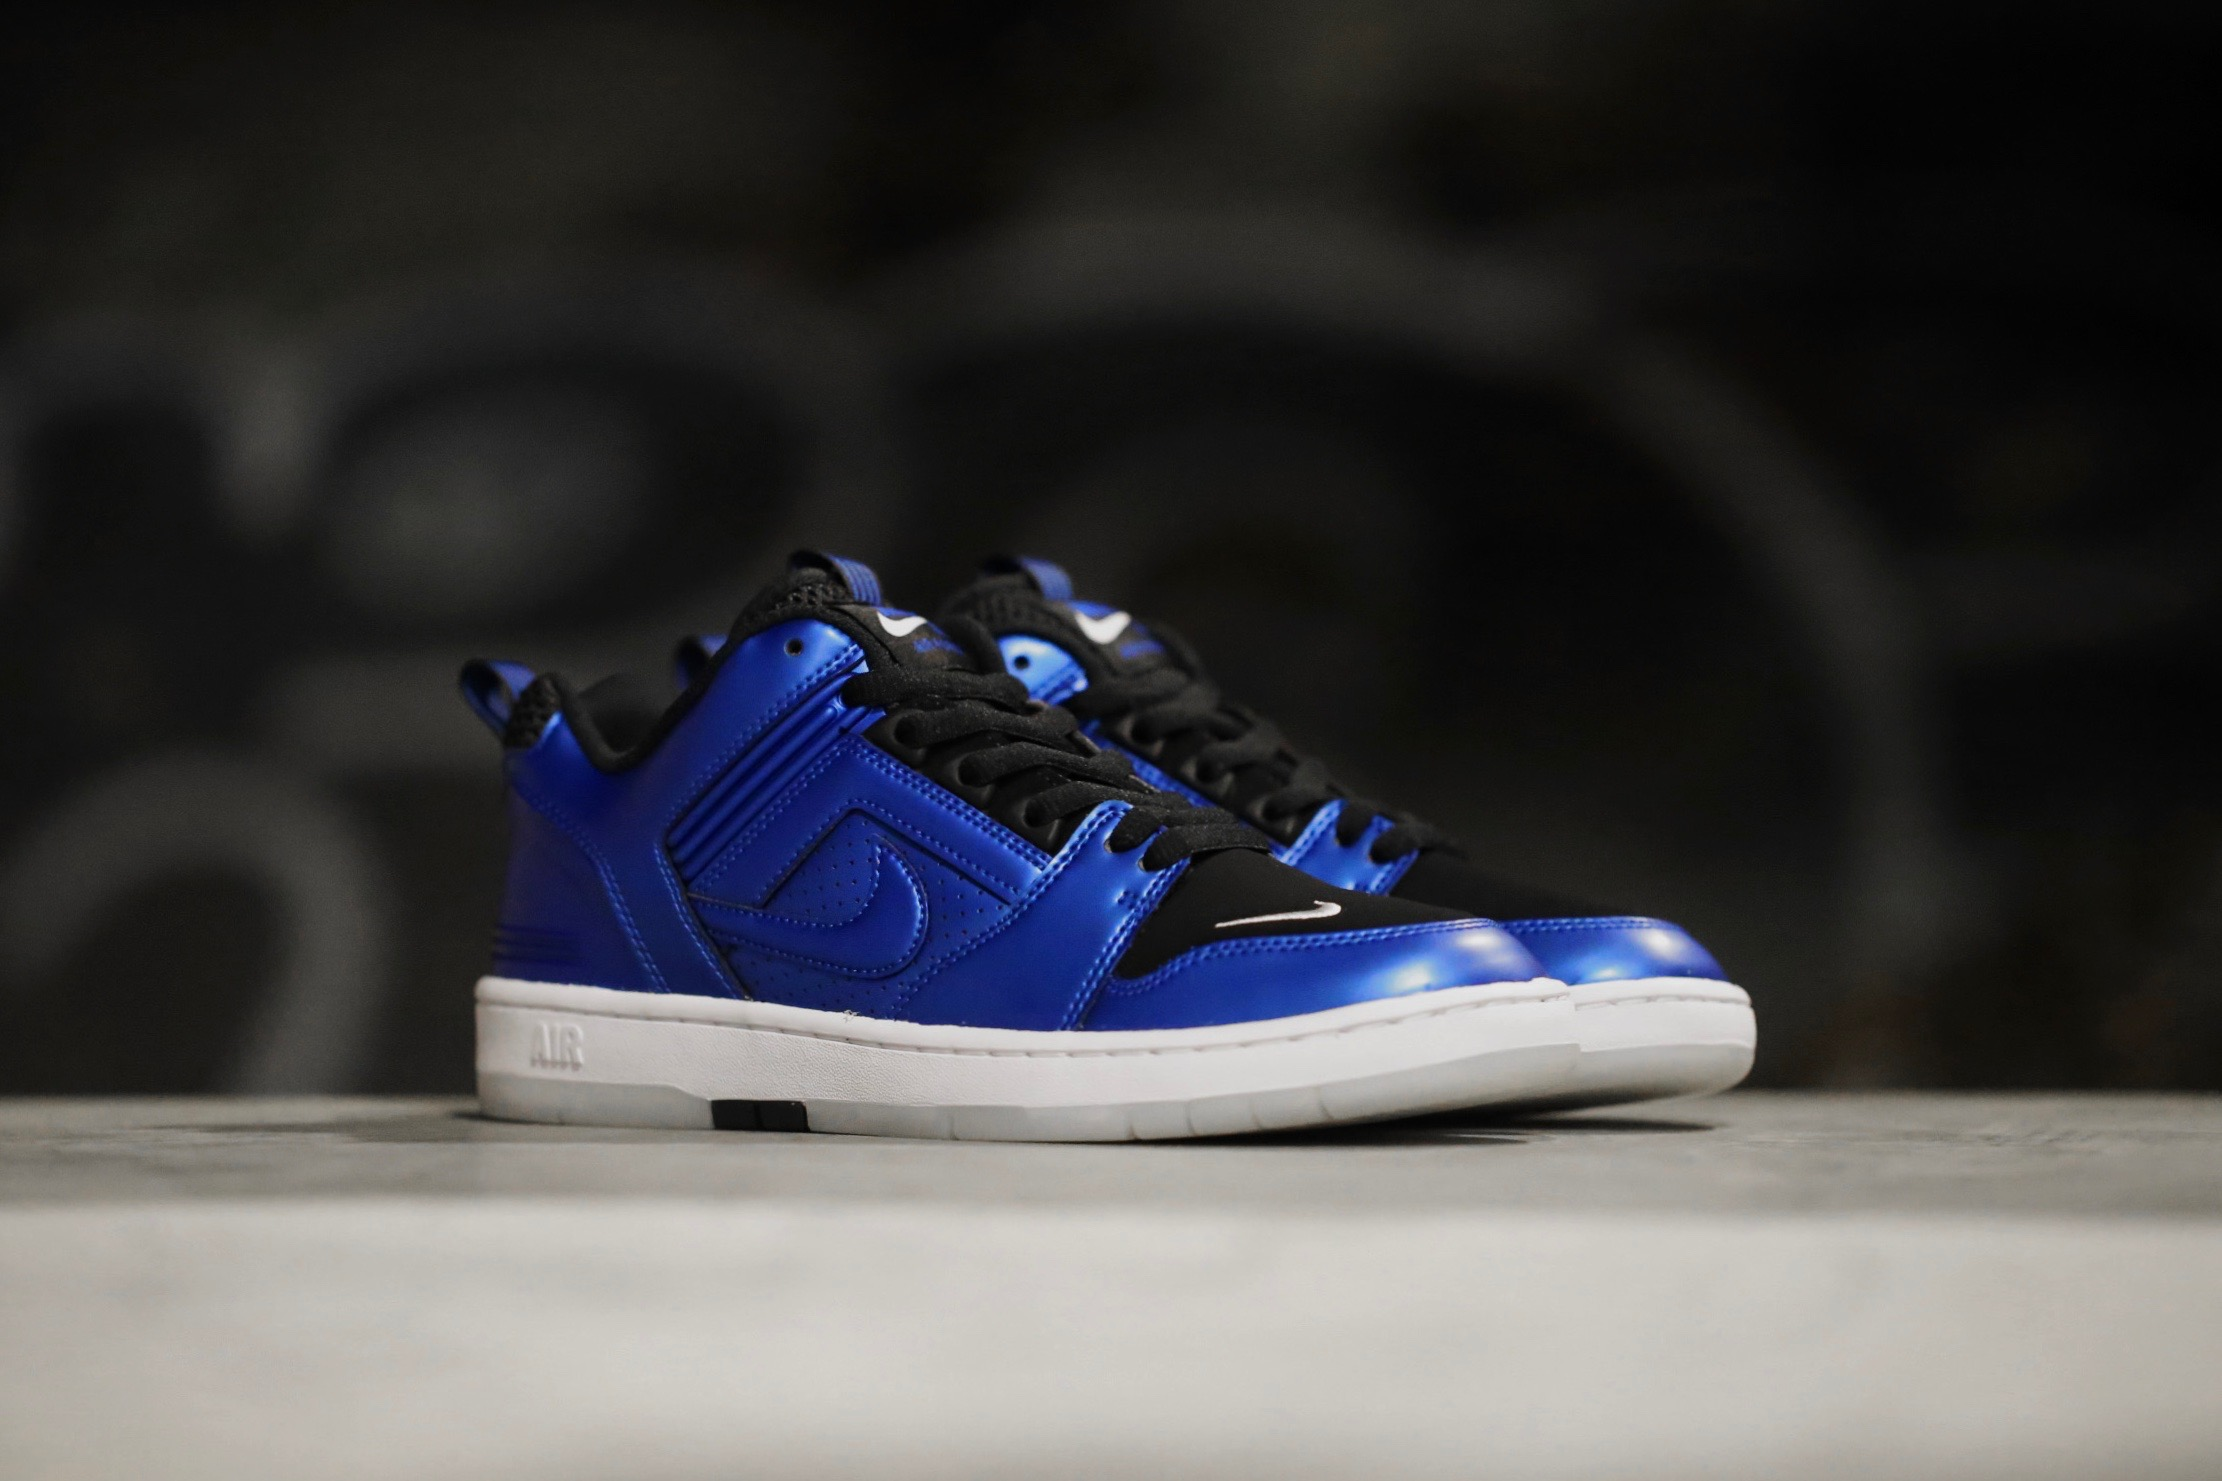 Nike SB Air Force II Low QS